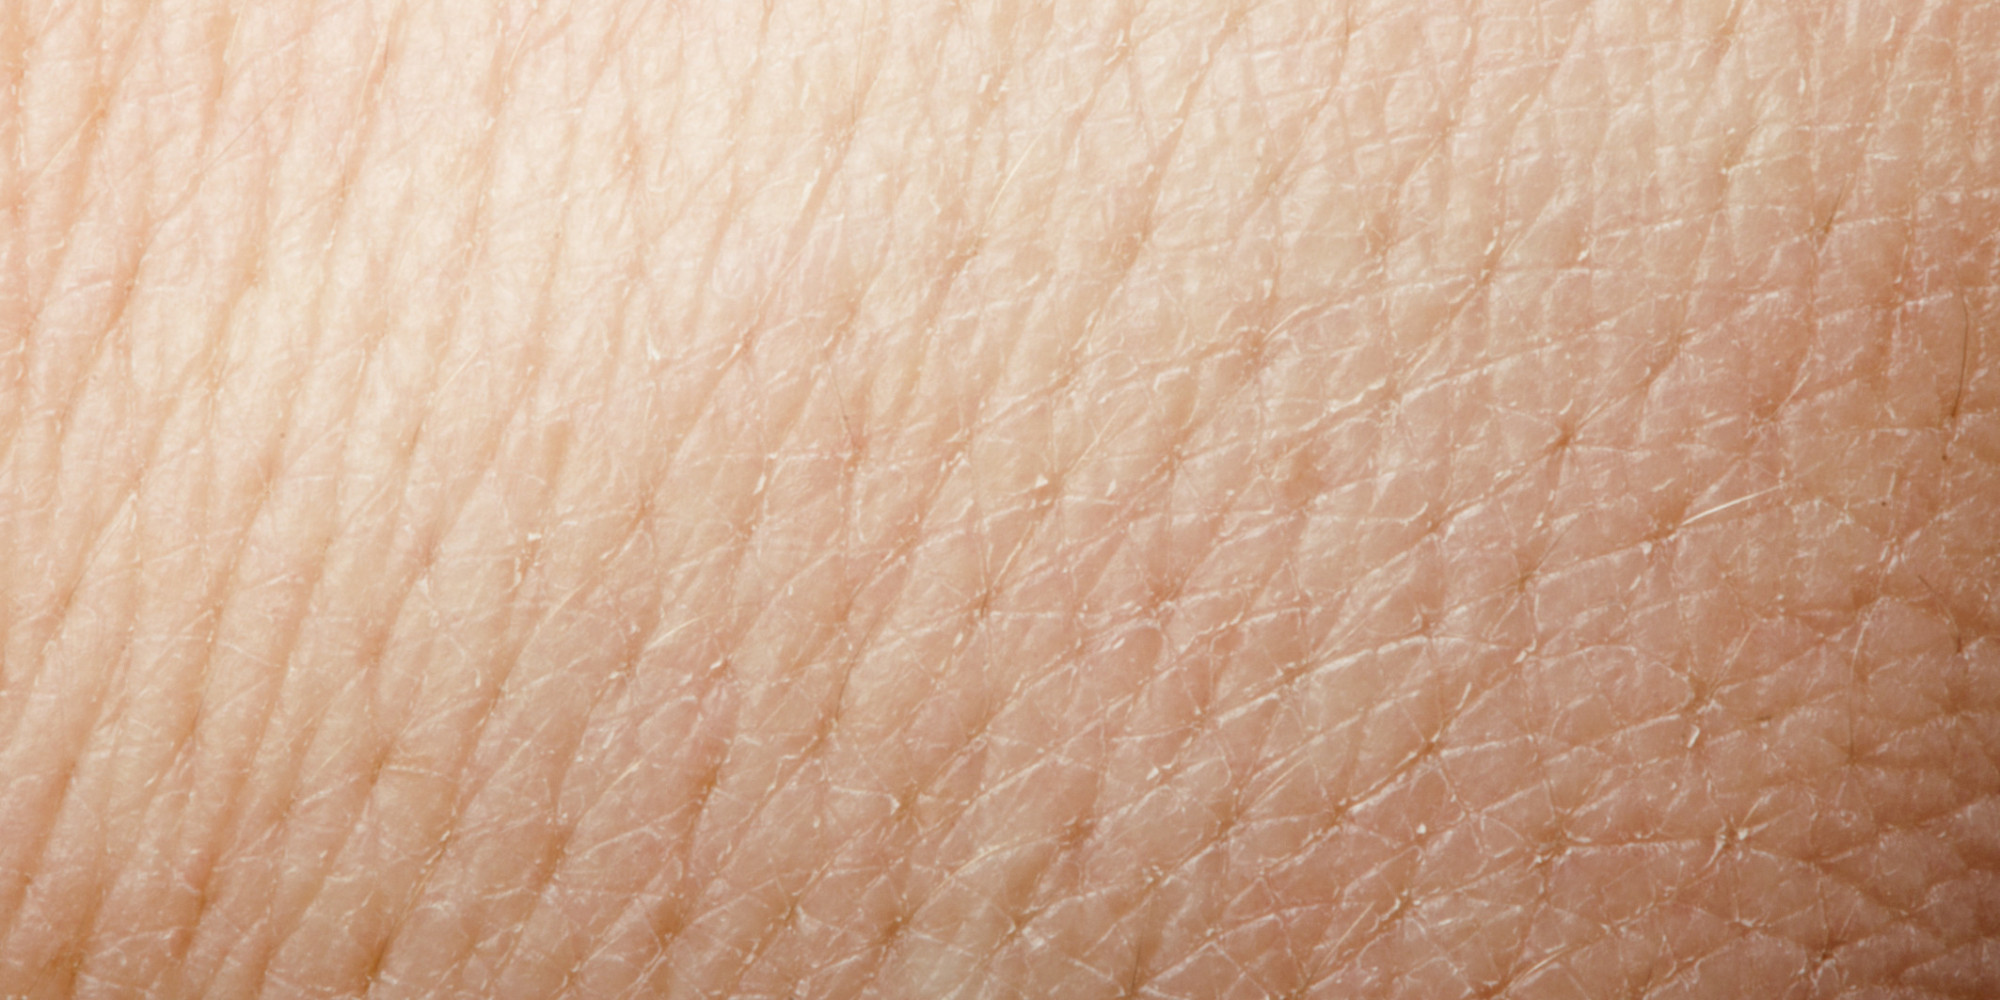 L'Oreal To Begin 3D Printing Skin In A Bid To Convince You ...